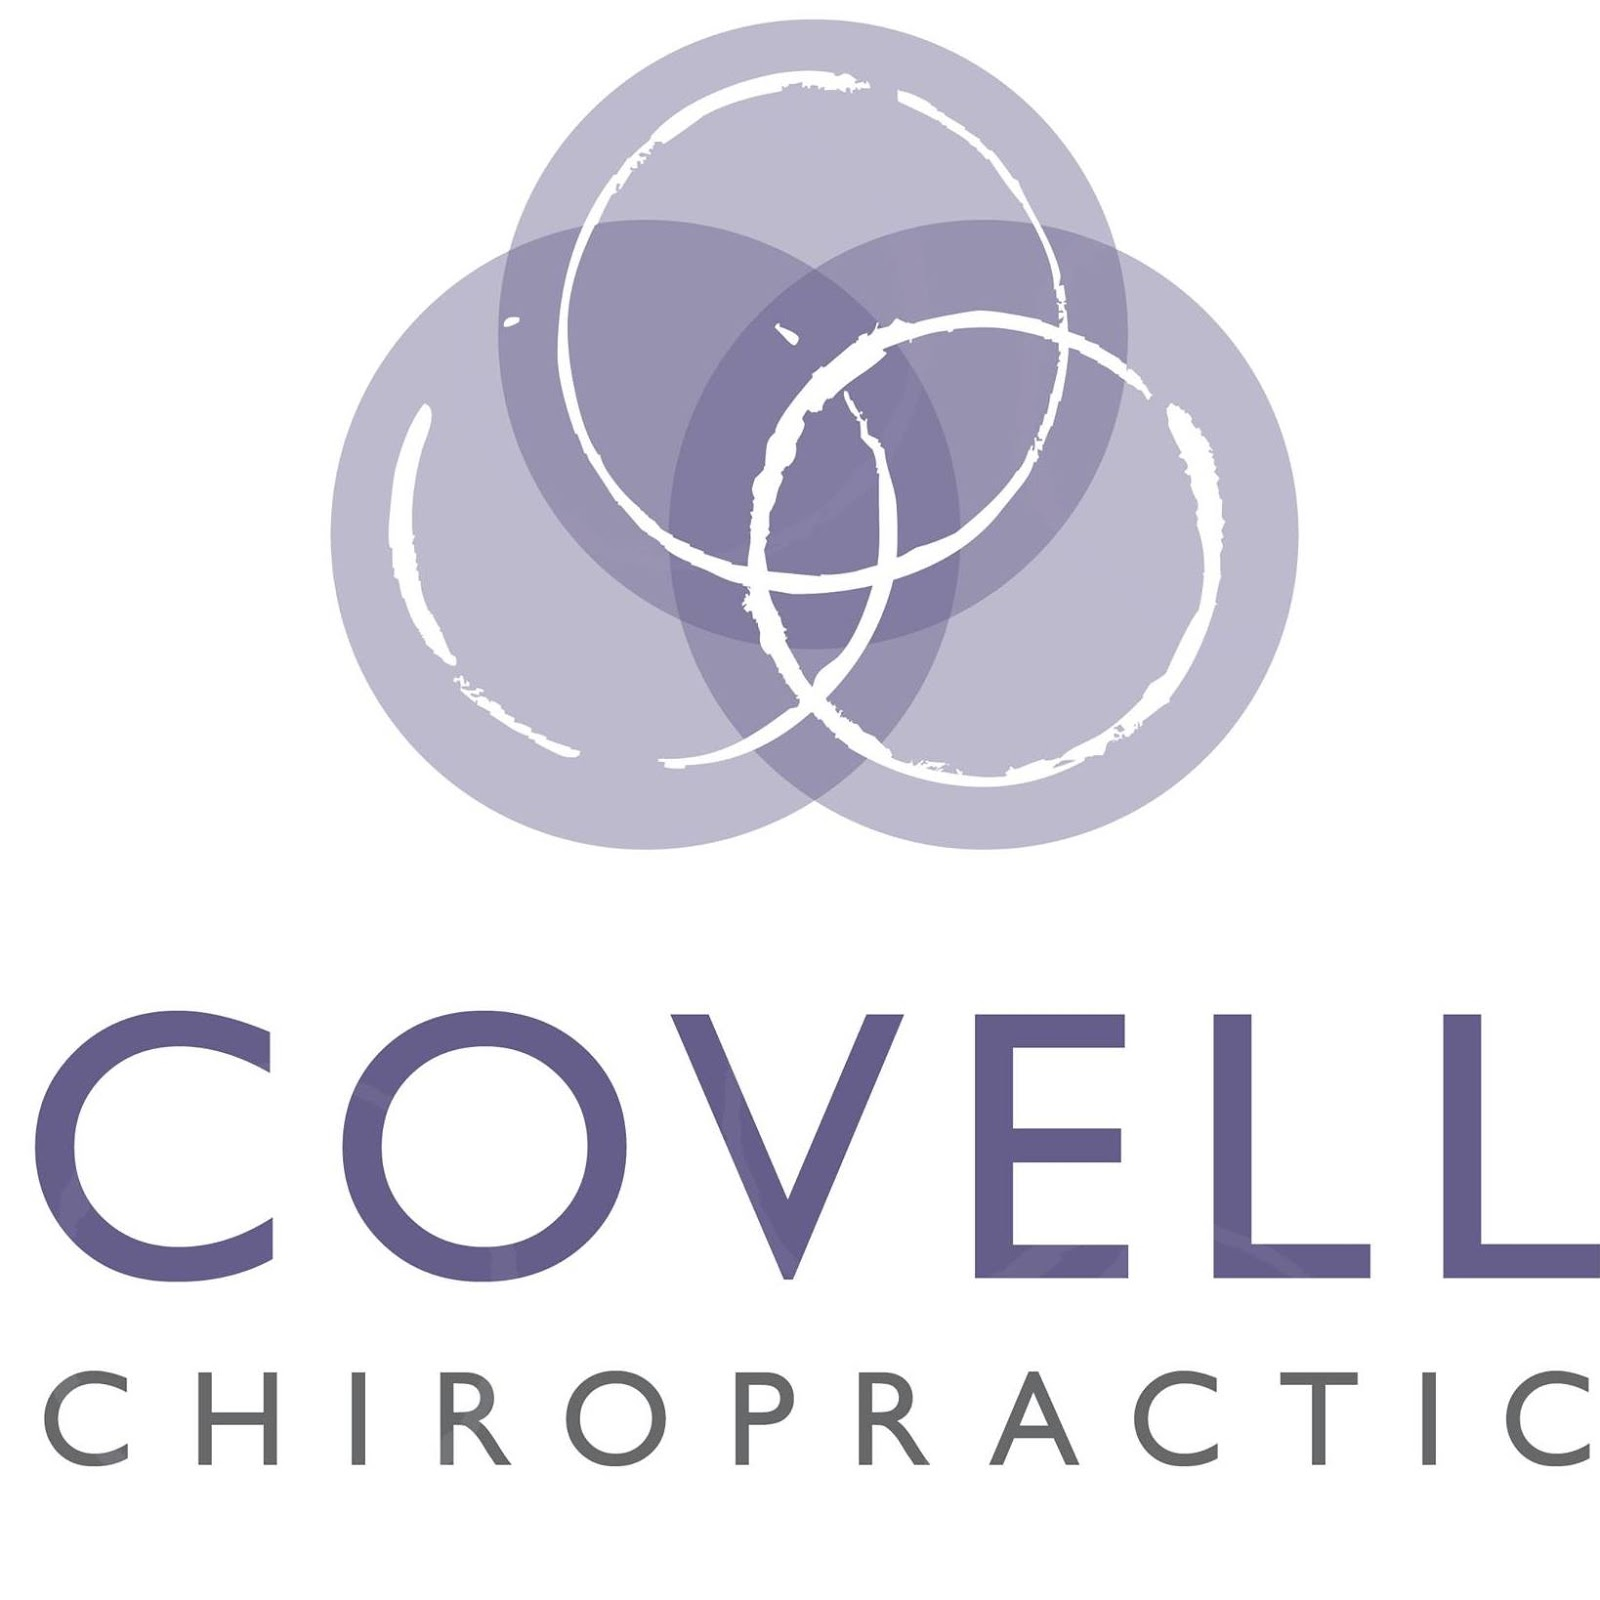 Covell Chiropractic - cover photo